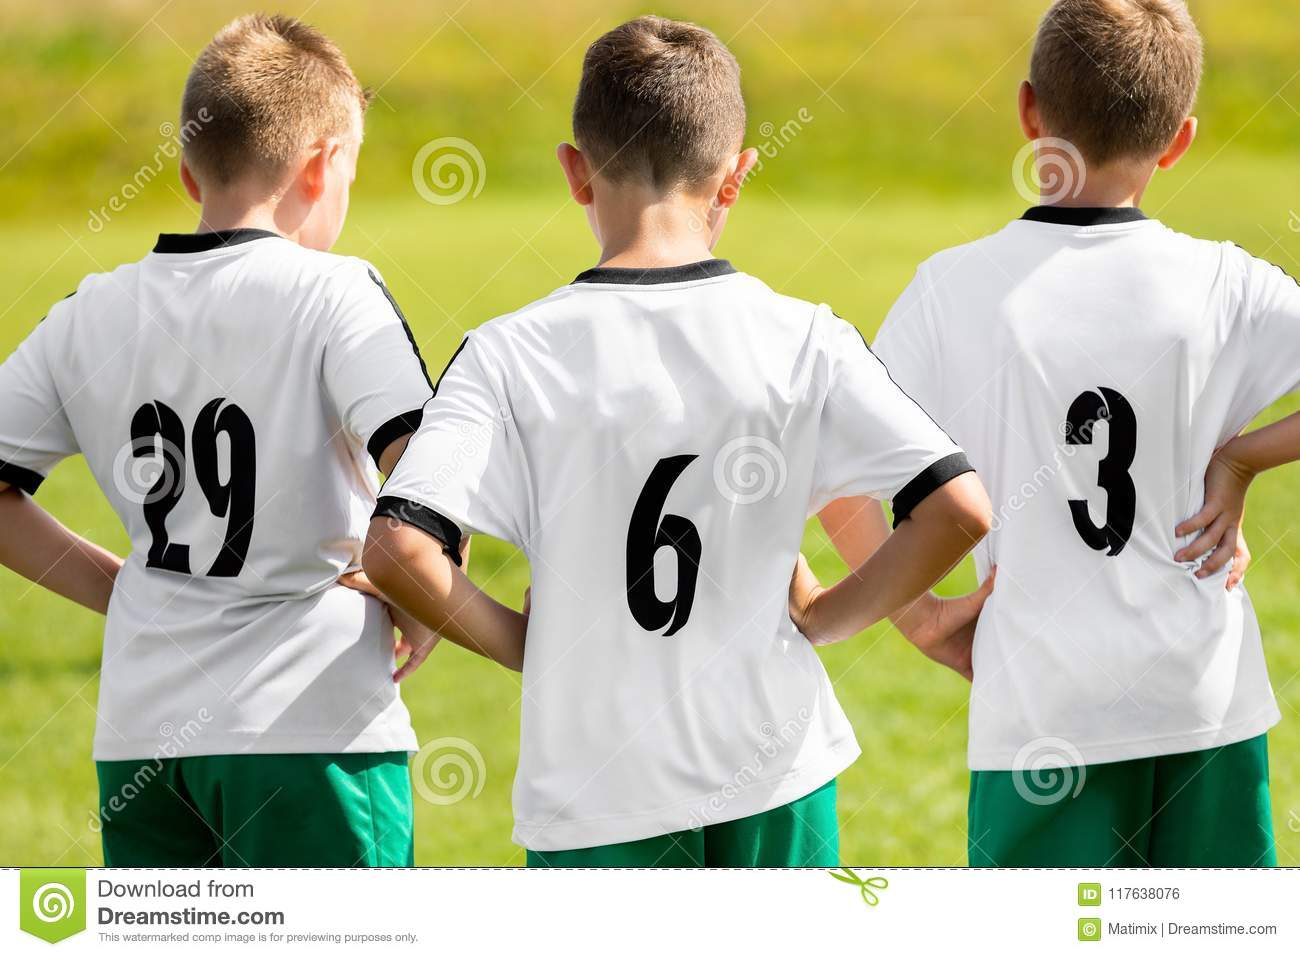 684ca2856fe Children Sports Team Wearing White Soccer Jersey Shirts. Young Boys  Watching Soccer Match. Football